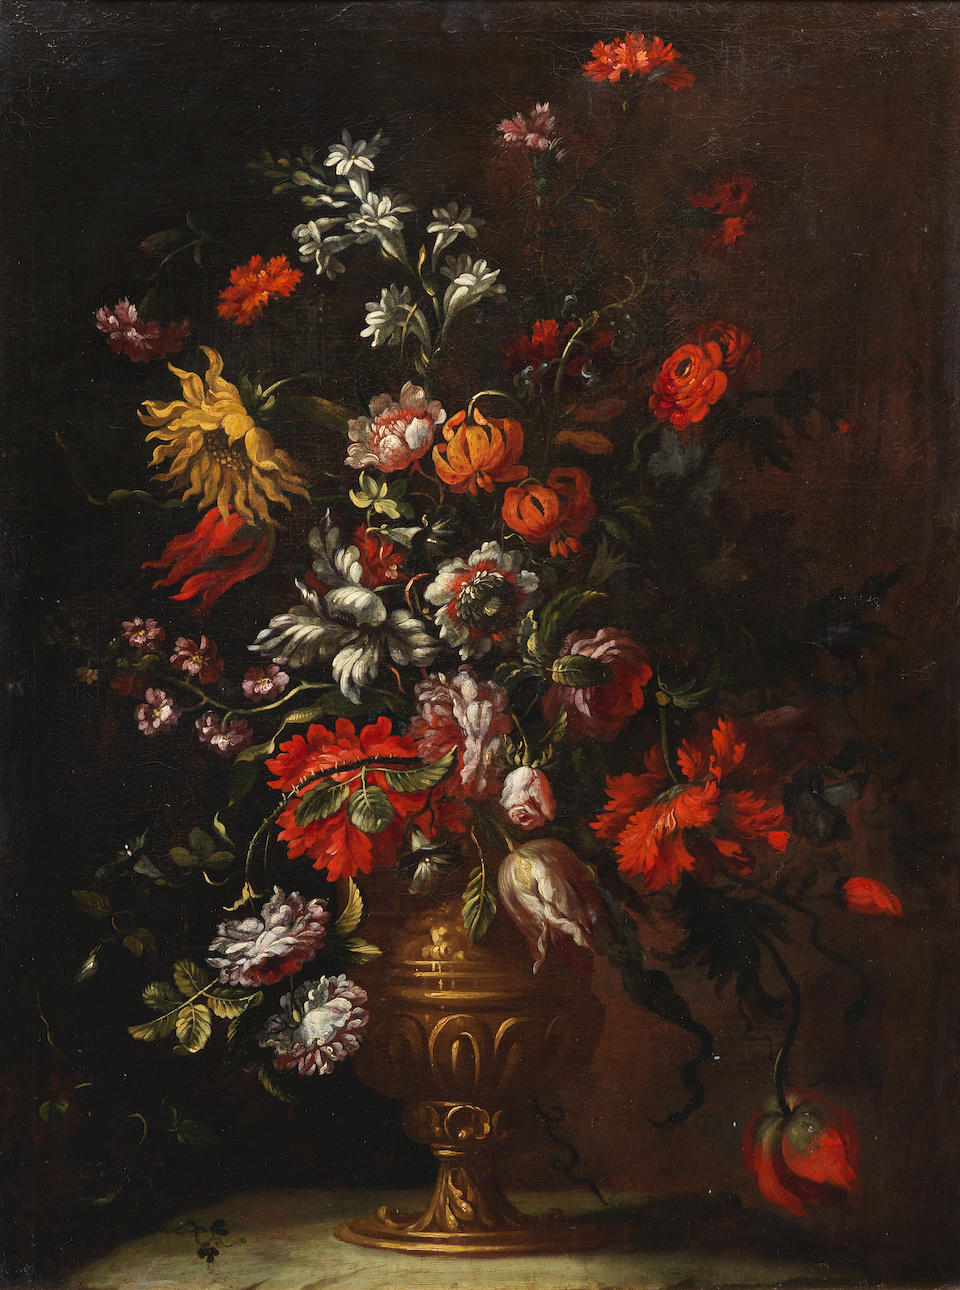 Follower of Jean-Baptiste Monnoyer (Lille 1636-1699 London) Tulips, poppies, roses and other flowers in a bronze urn